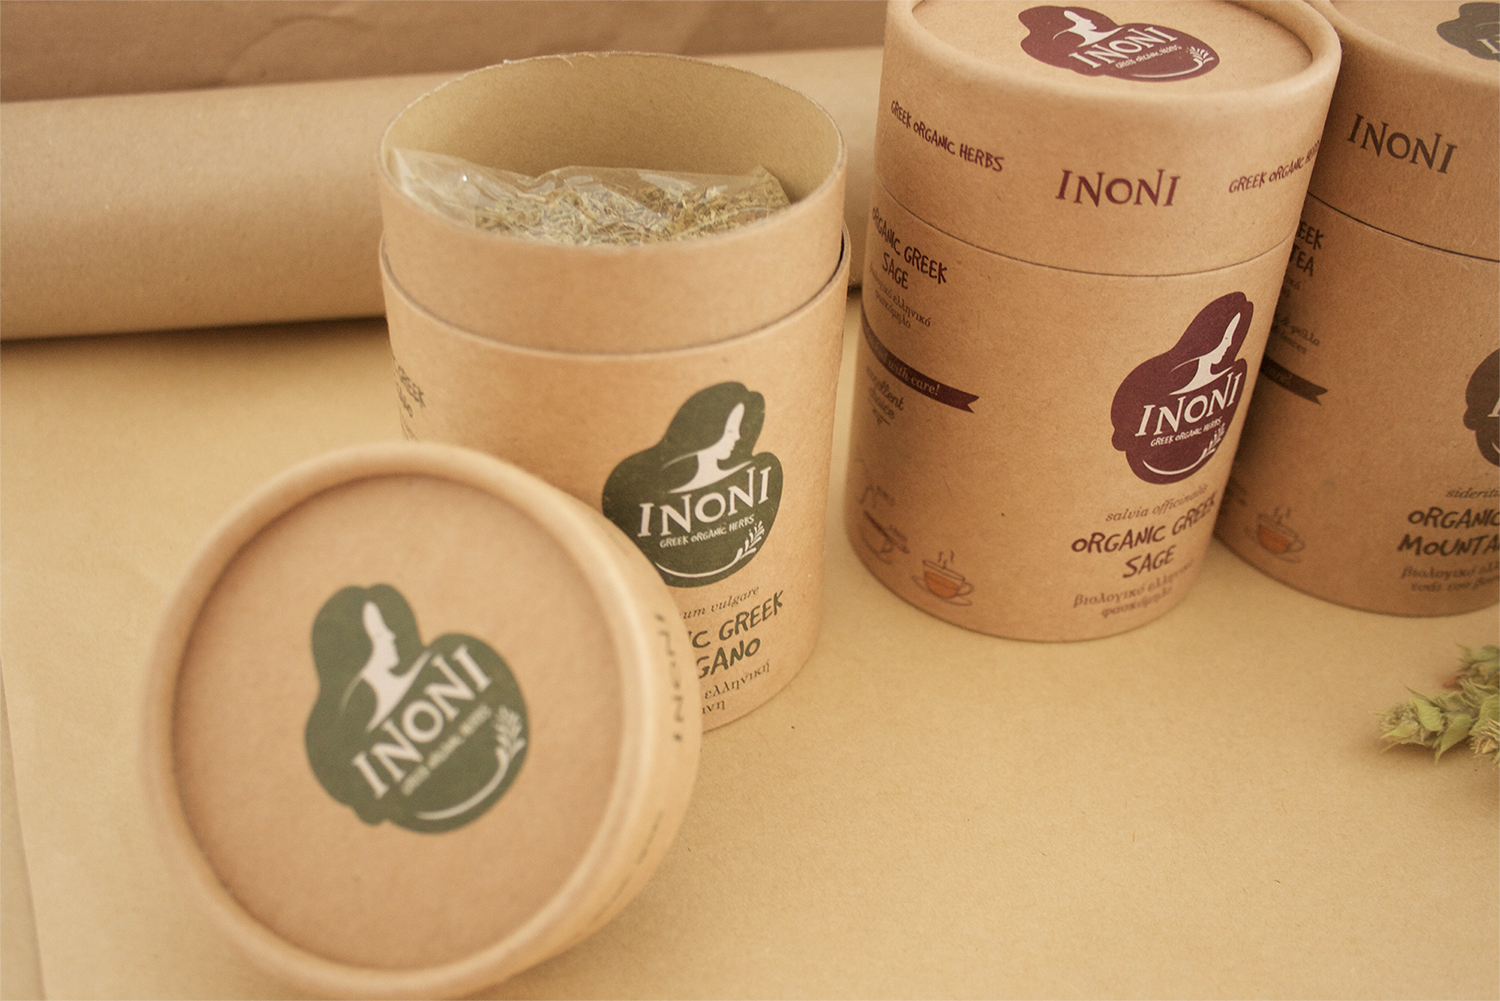 Inoni_Packaging_11